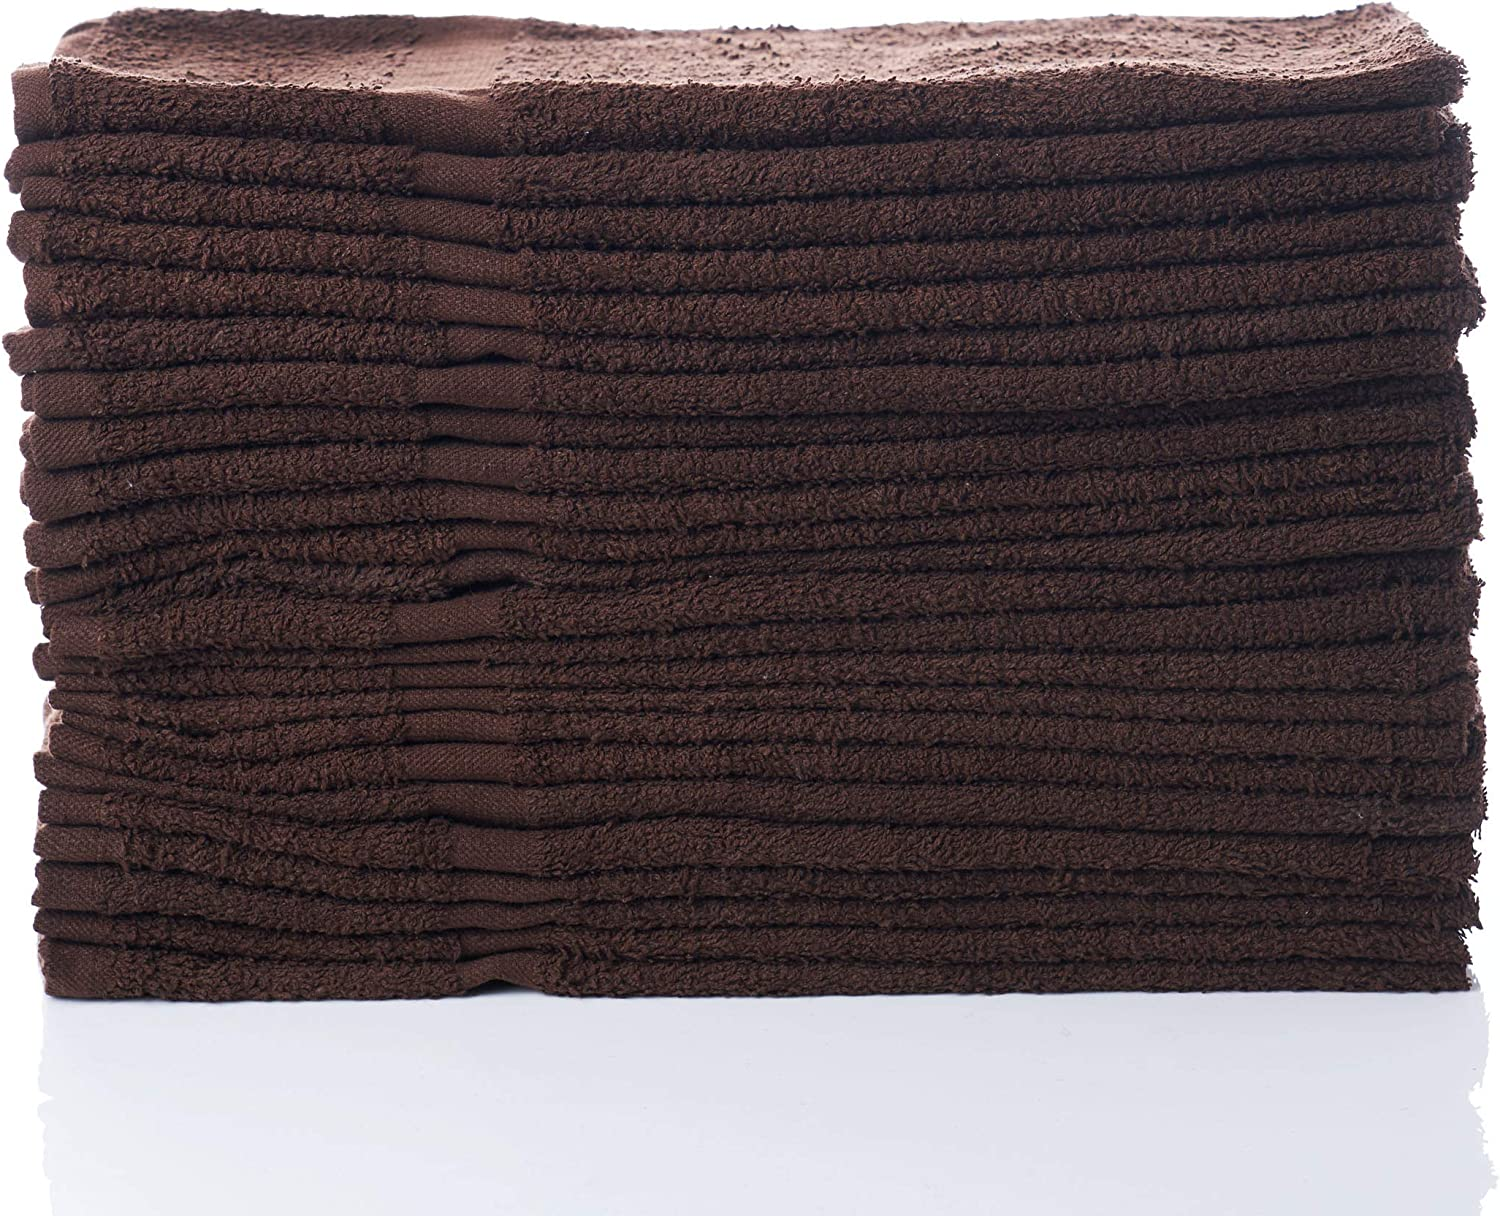 "Simpli-Magic 79223 Brown Hand Towels, Size: 16"" x 27 12 Count"